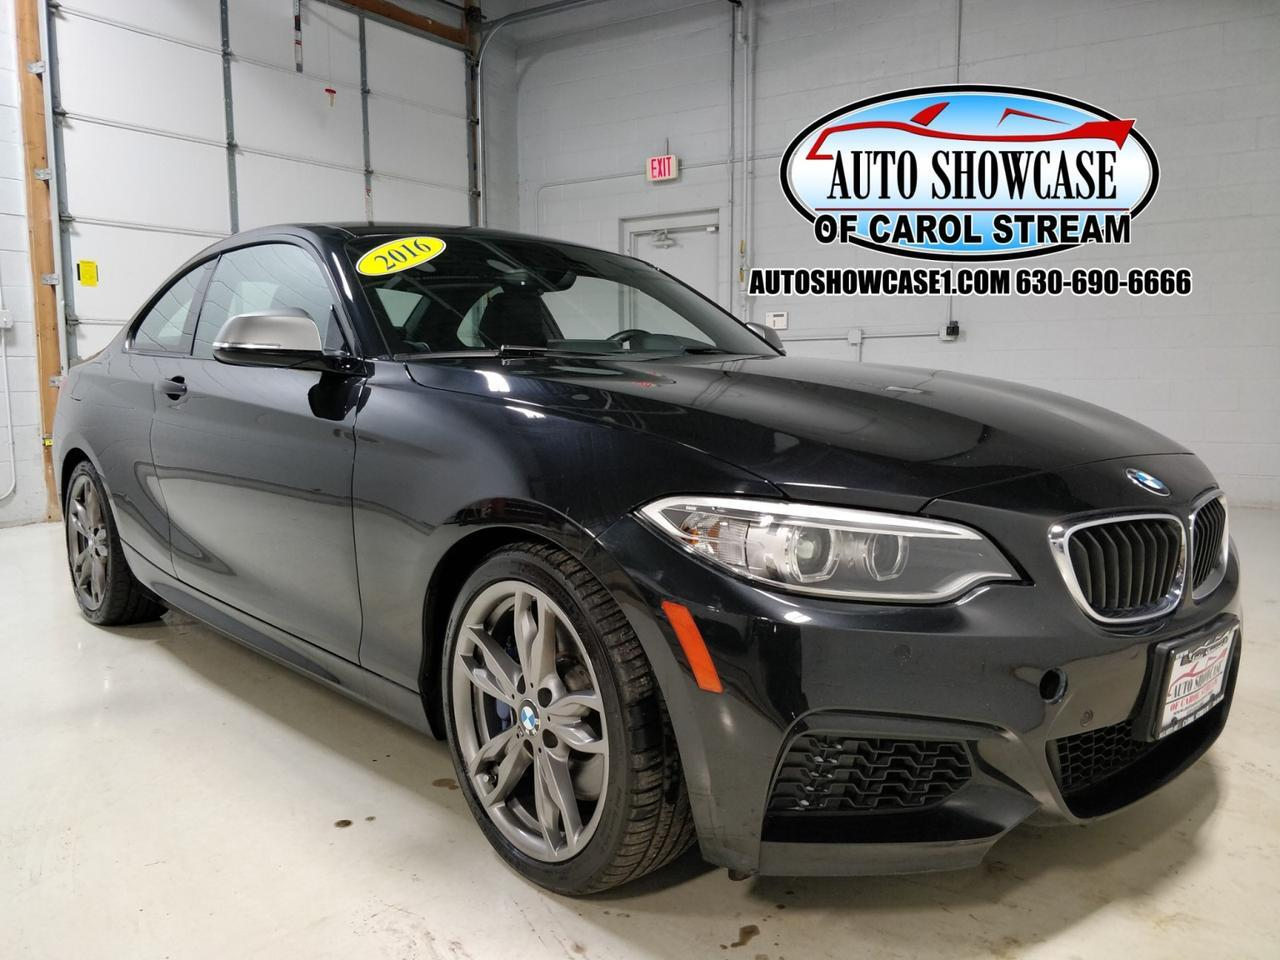 2016 BMW M235i 6spd Carol Stream IL